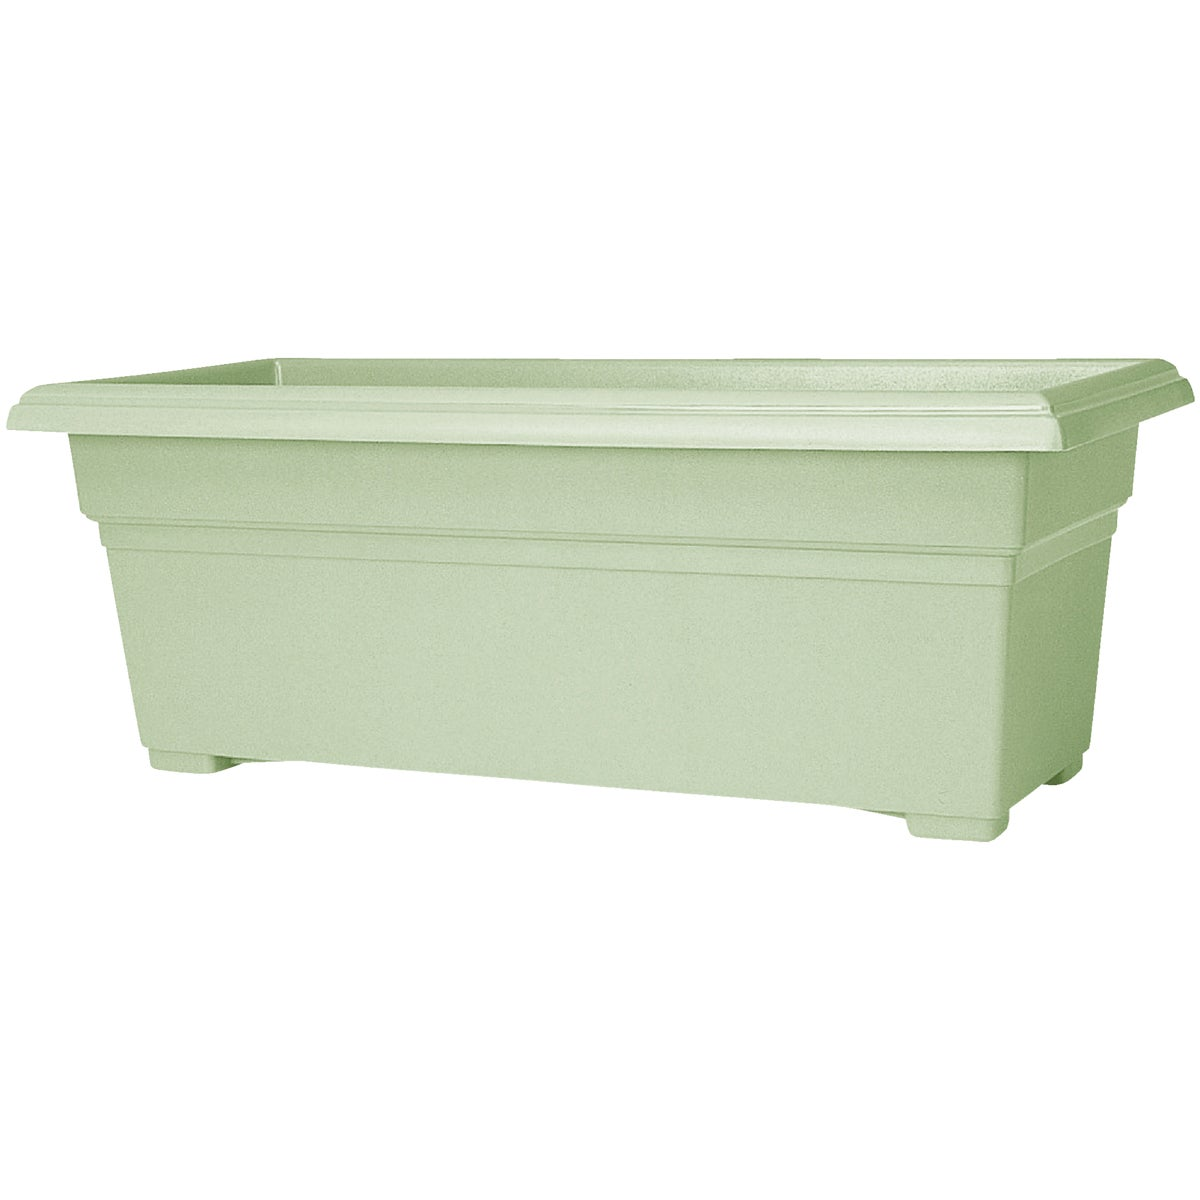 "24"" FLOWERBOX SAGE - 16240 by Novelty Mfg Co"